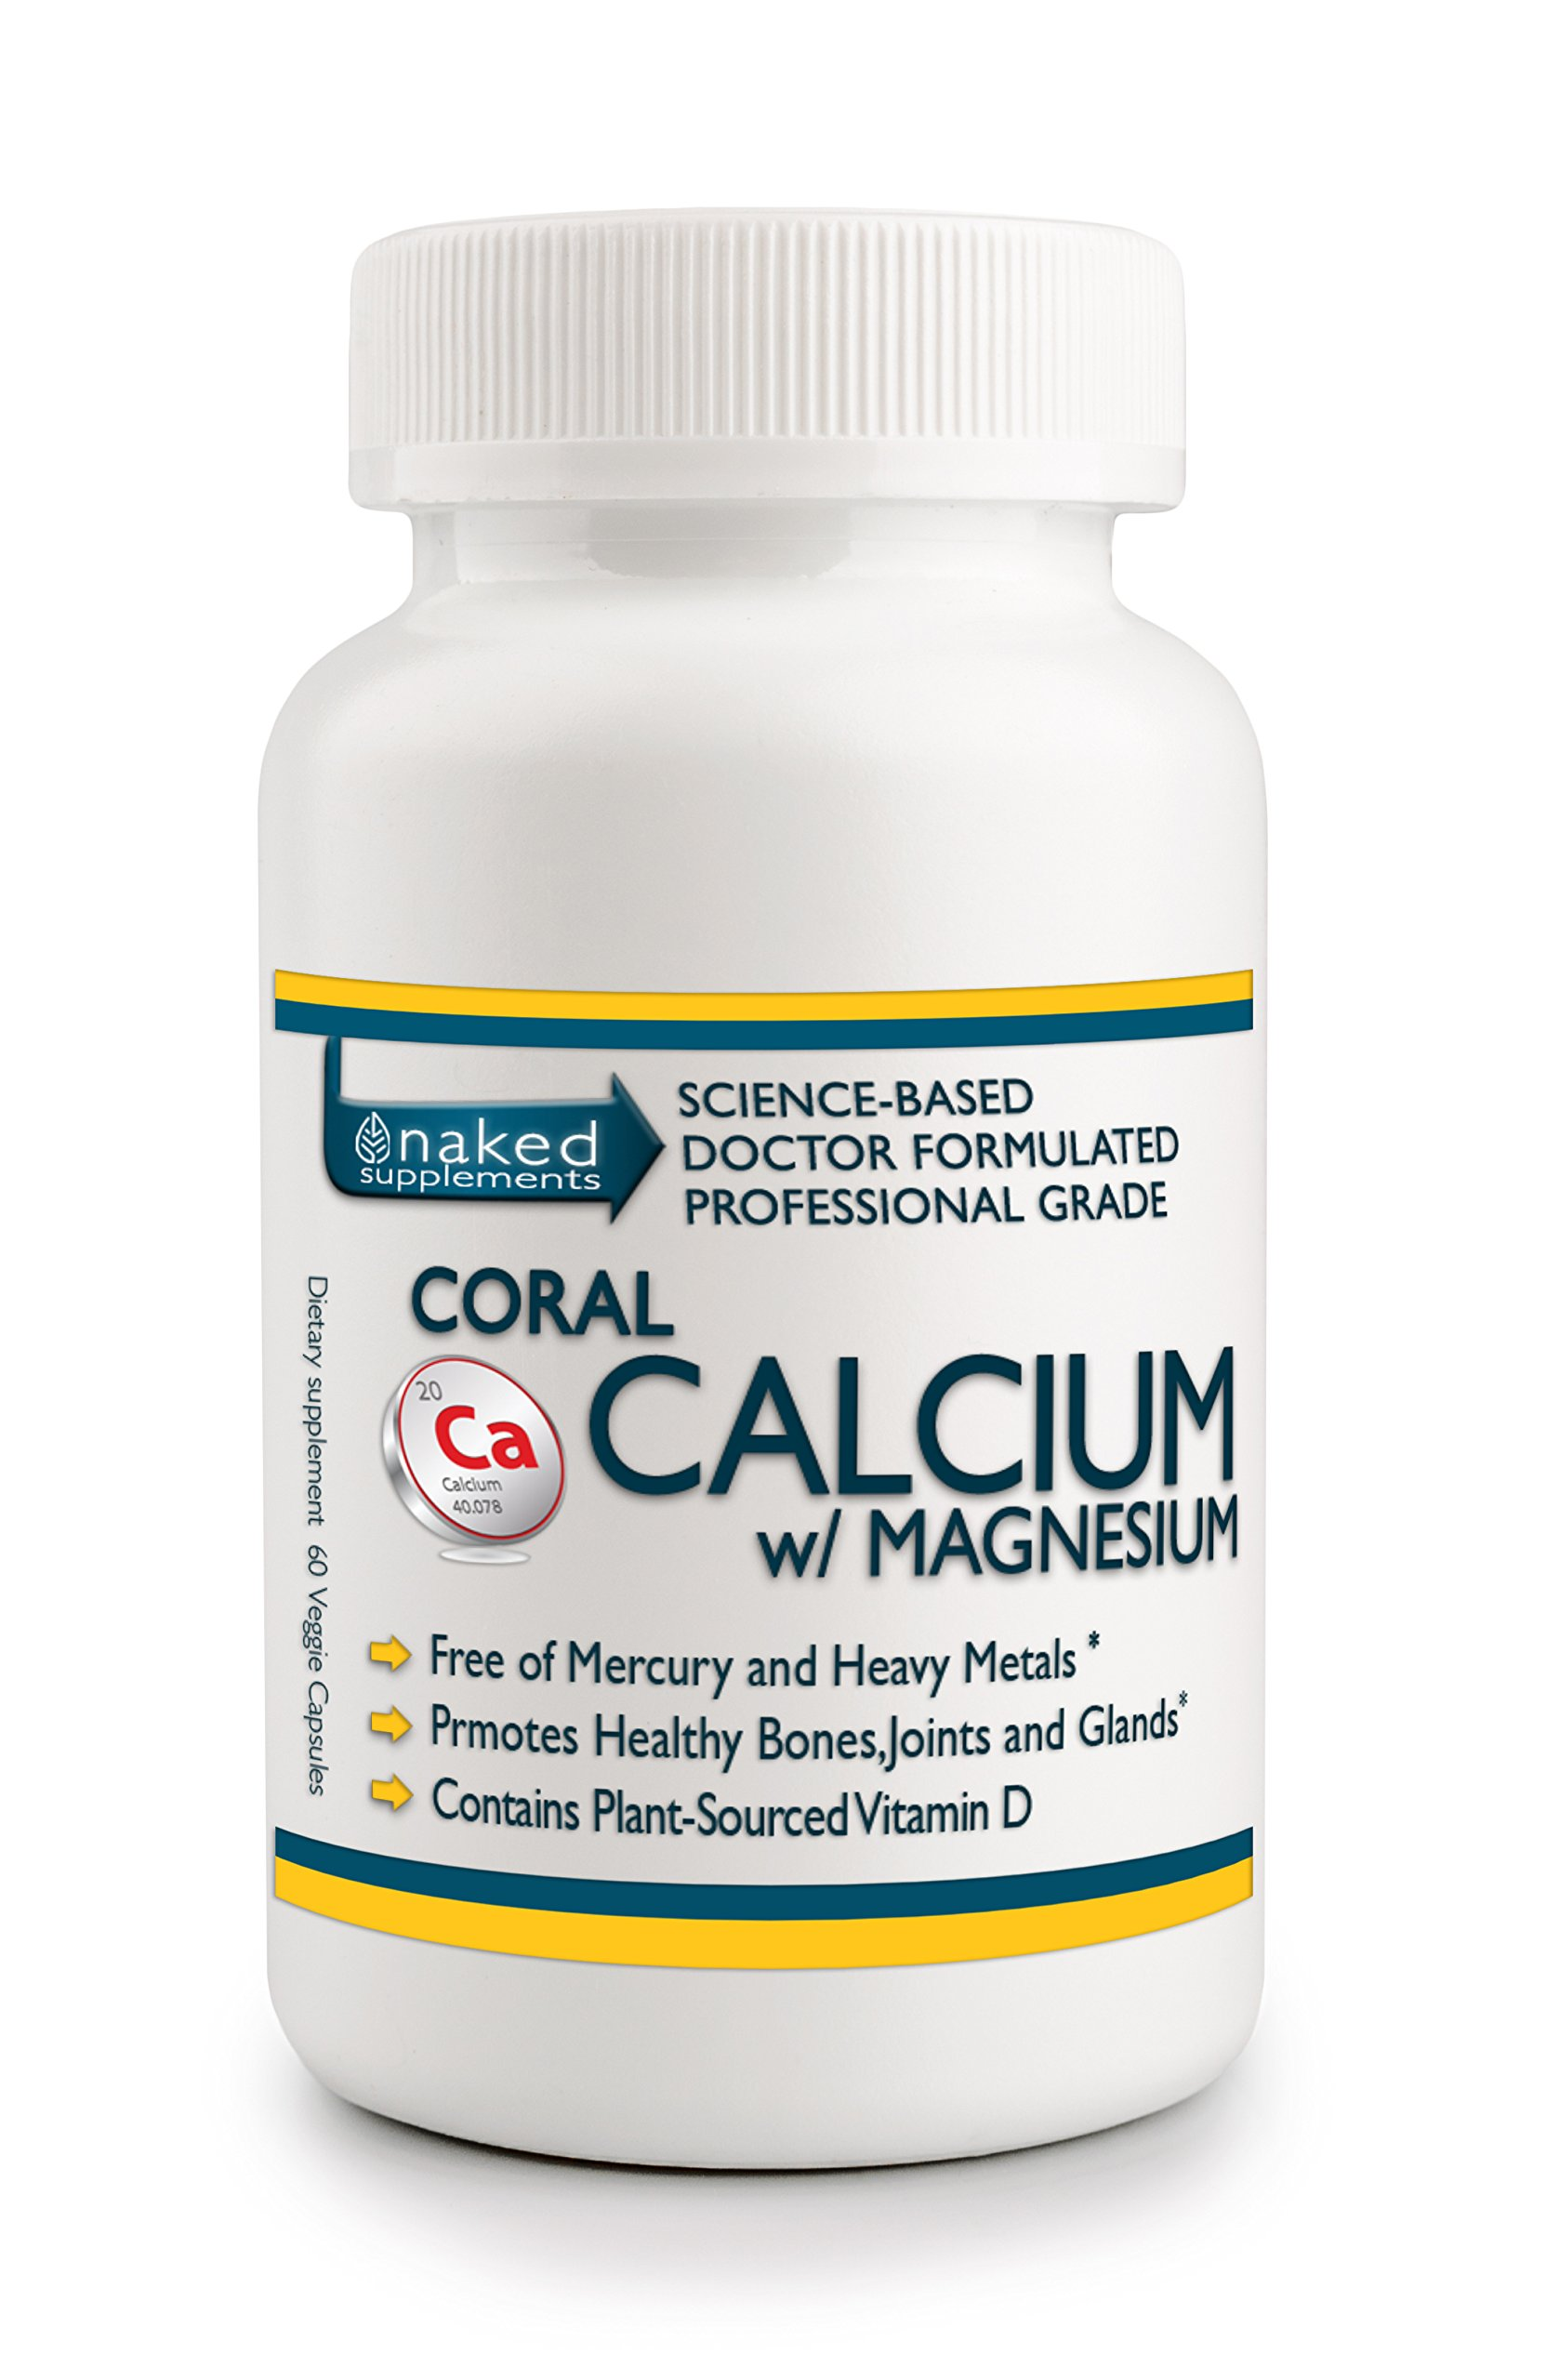 Professional Grade CORAL CALCIUM w/ Magnesium_Superior Ionized Calcium-Magnesium Delivery System for Immediate Uptake into the Body. No Added Stearates (1)